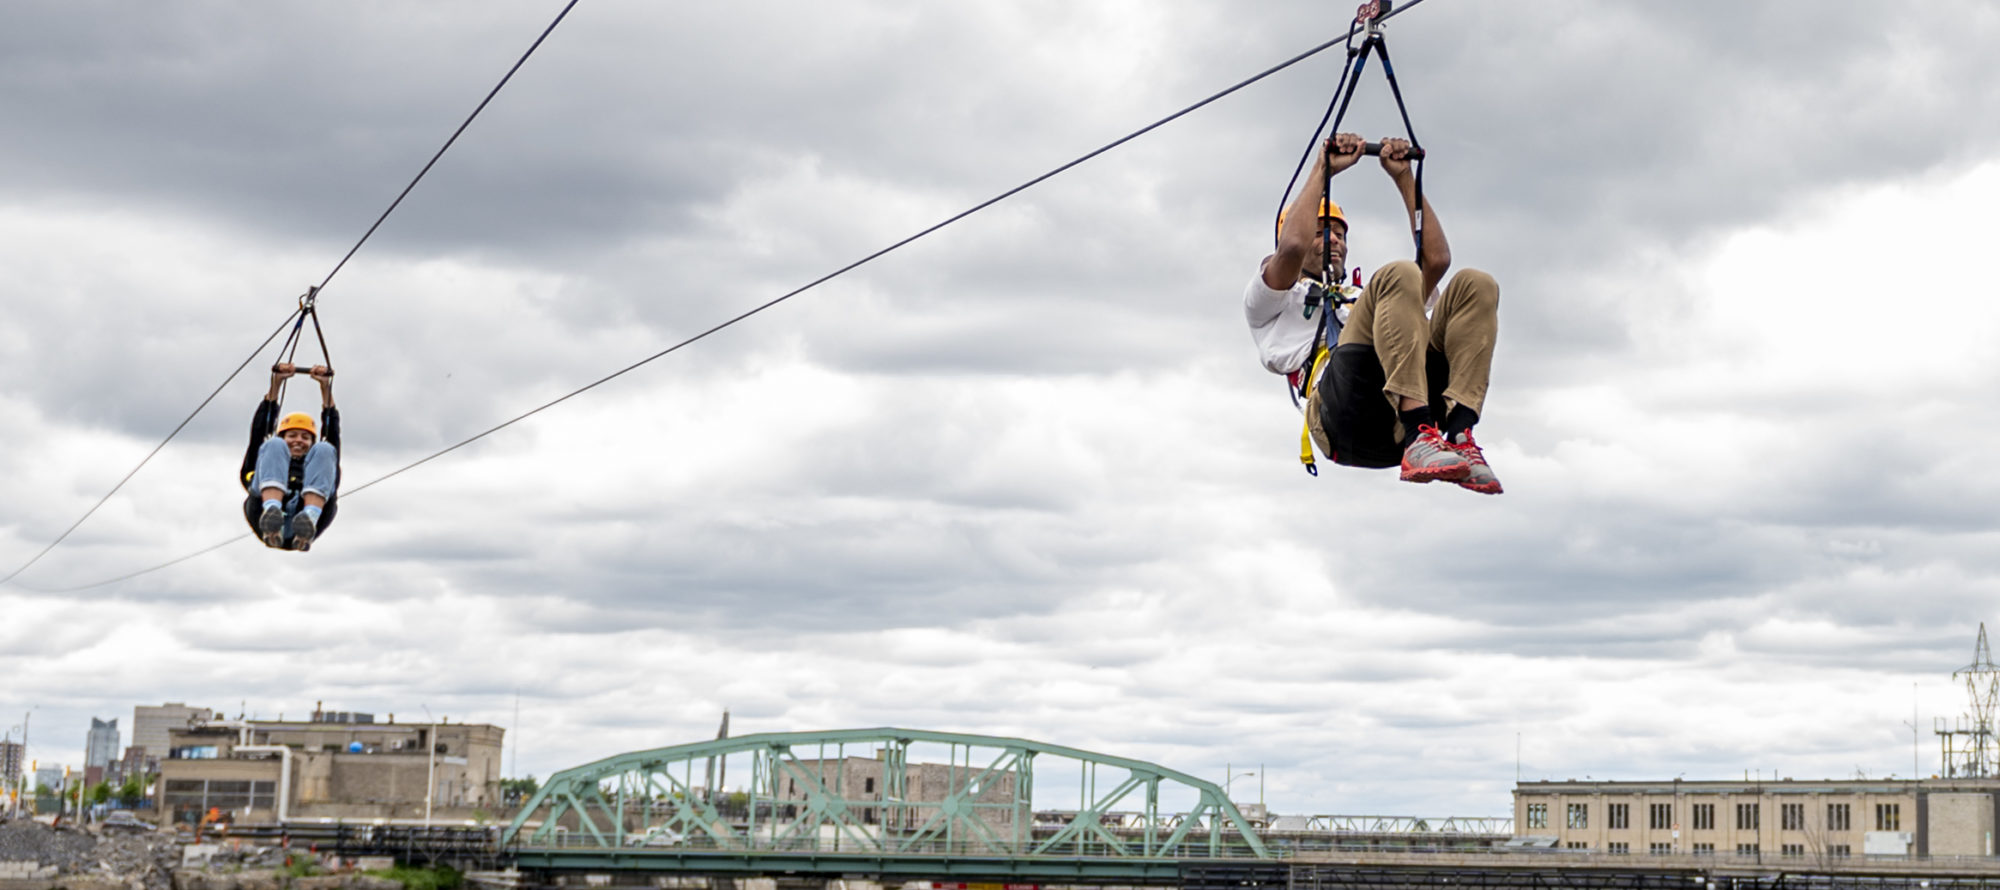 Zip line over Ottawa River a thrilling ride with a spectacular view